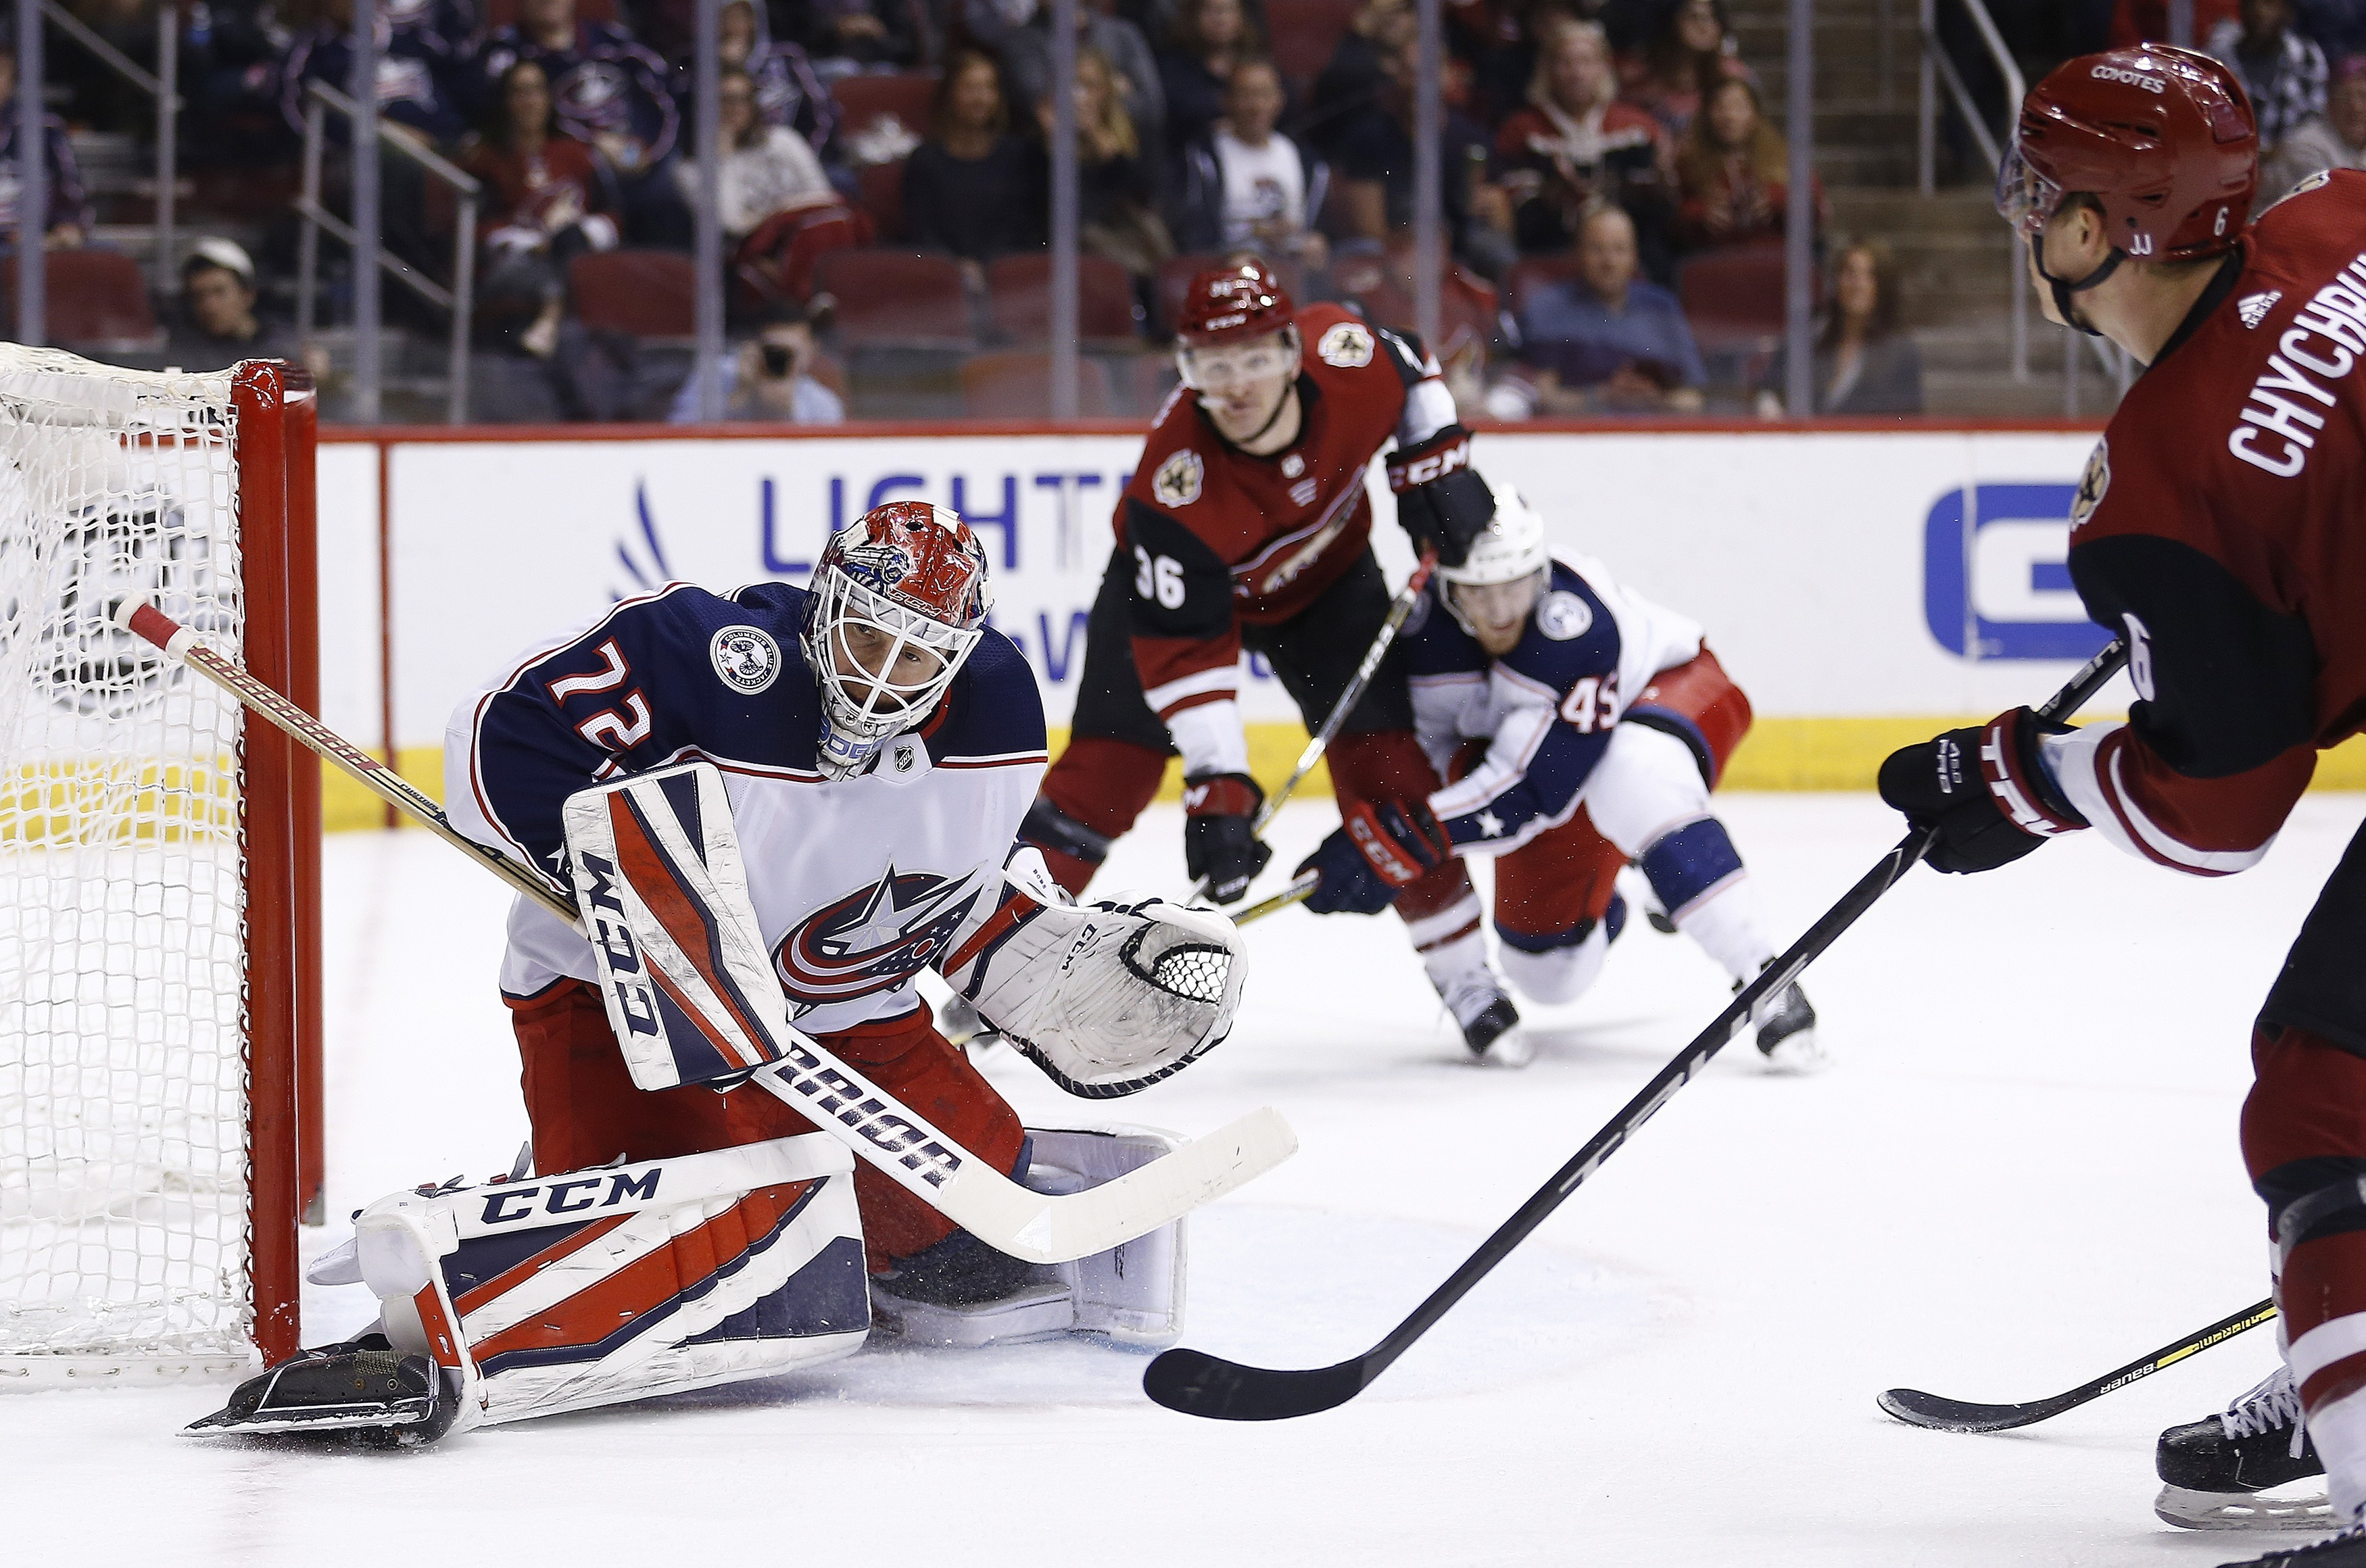 Columbus Blue Jackets goaltender Sergei Bobrovsky (72) makes a save on a shot by Arizona Coyotes defenseman Jakob Chychrun, right, during the second period of an NHL hockey game, Thursday, Jan. 25, 2018, in Glendale, Ariz. (AP Photo/Ross D. Franklin)